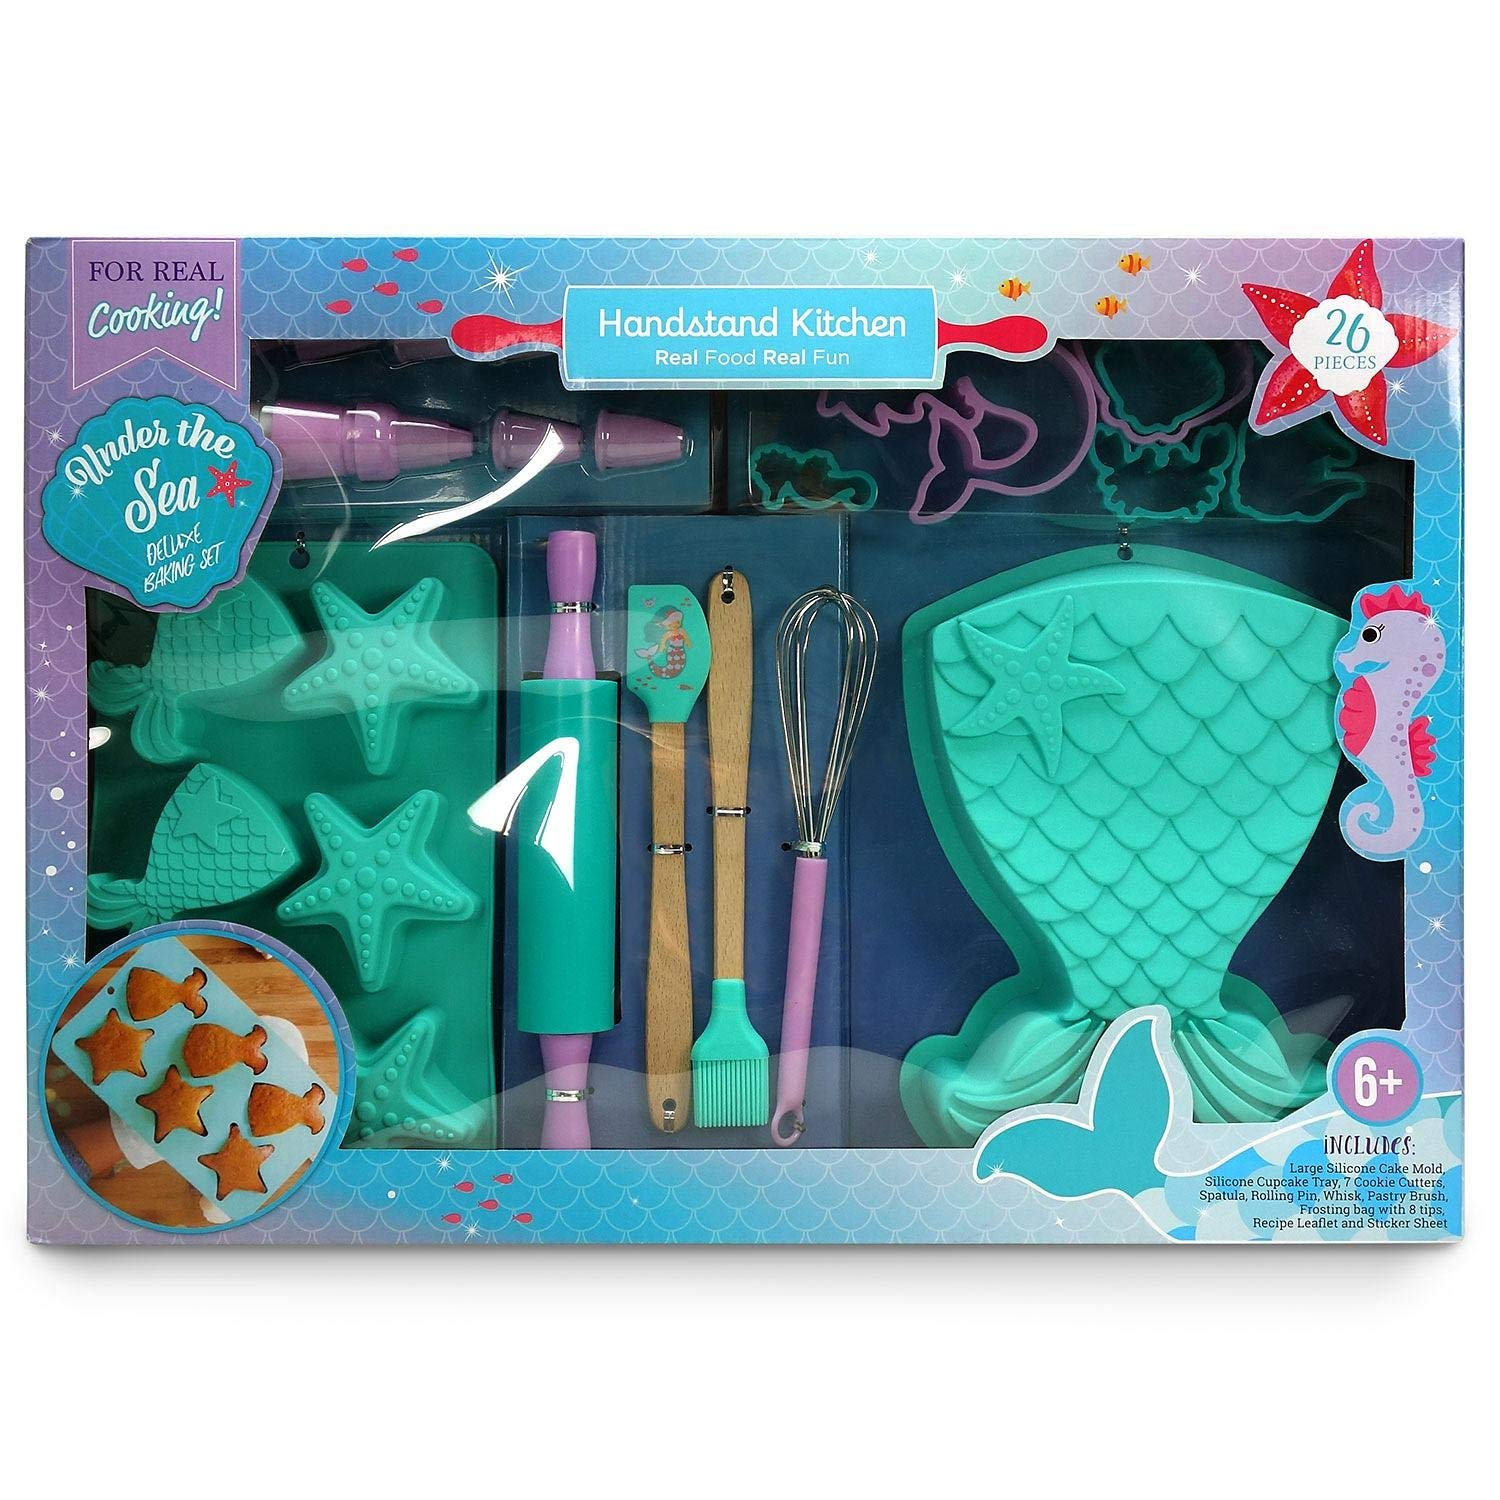 Handstand Kitchen Baking Set 26 Pieces - Real Food Real Fun - Under The Sea Deluxe Baking Set for Real Cooking by Handstand Kitchen